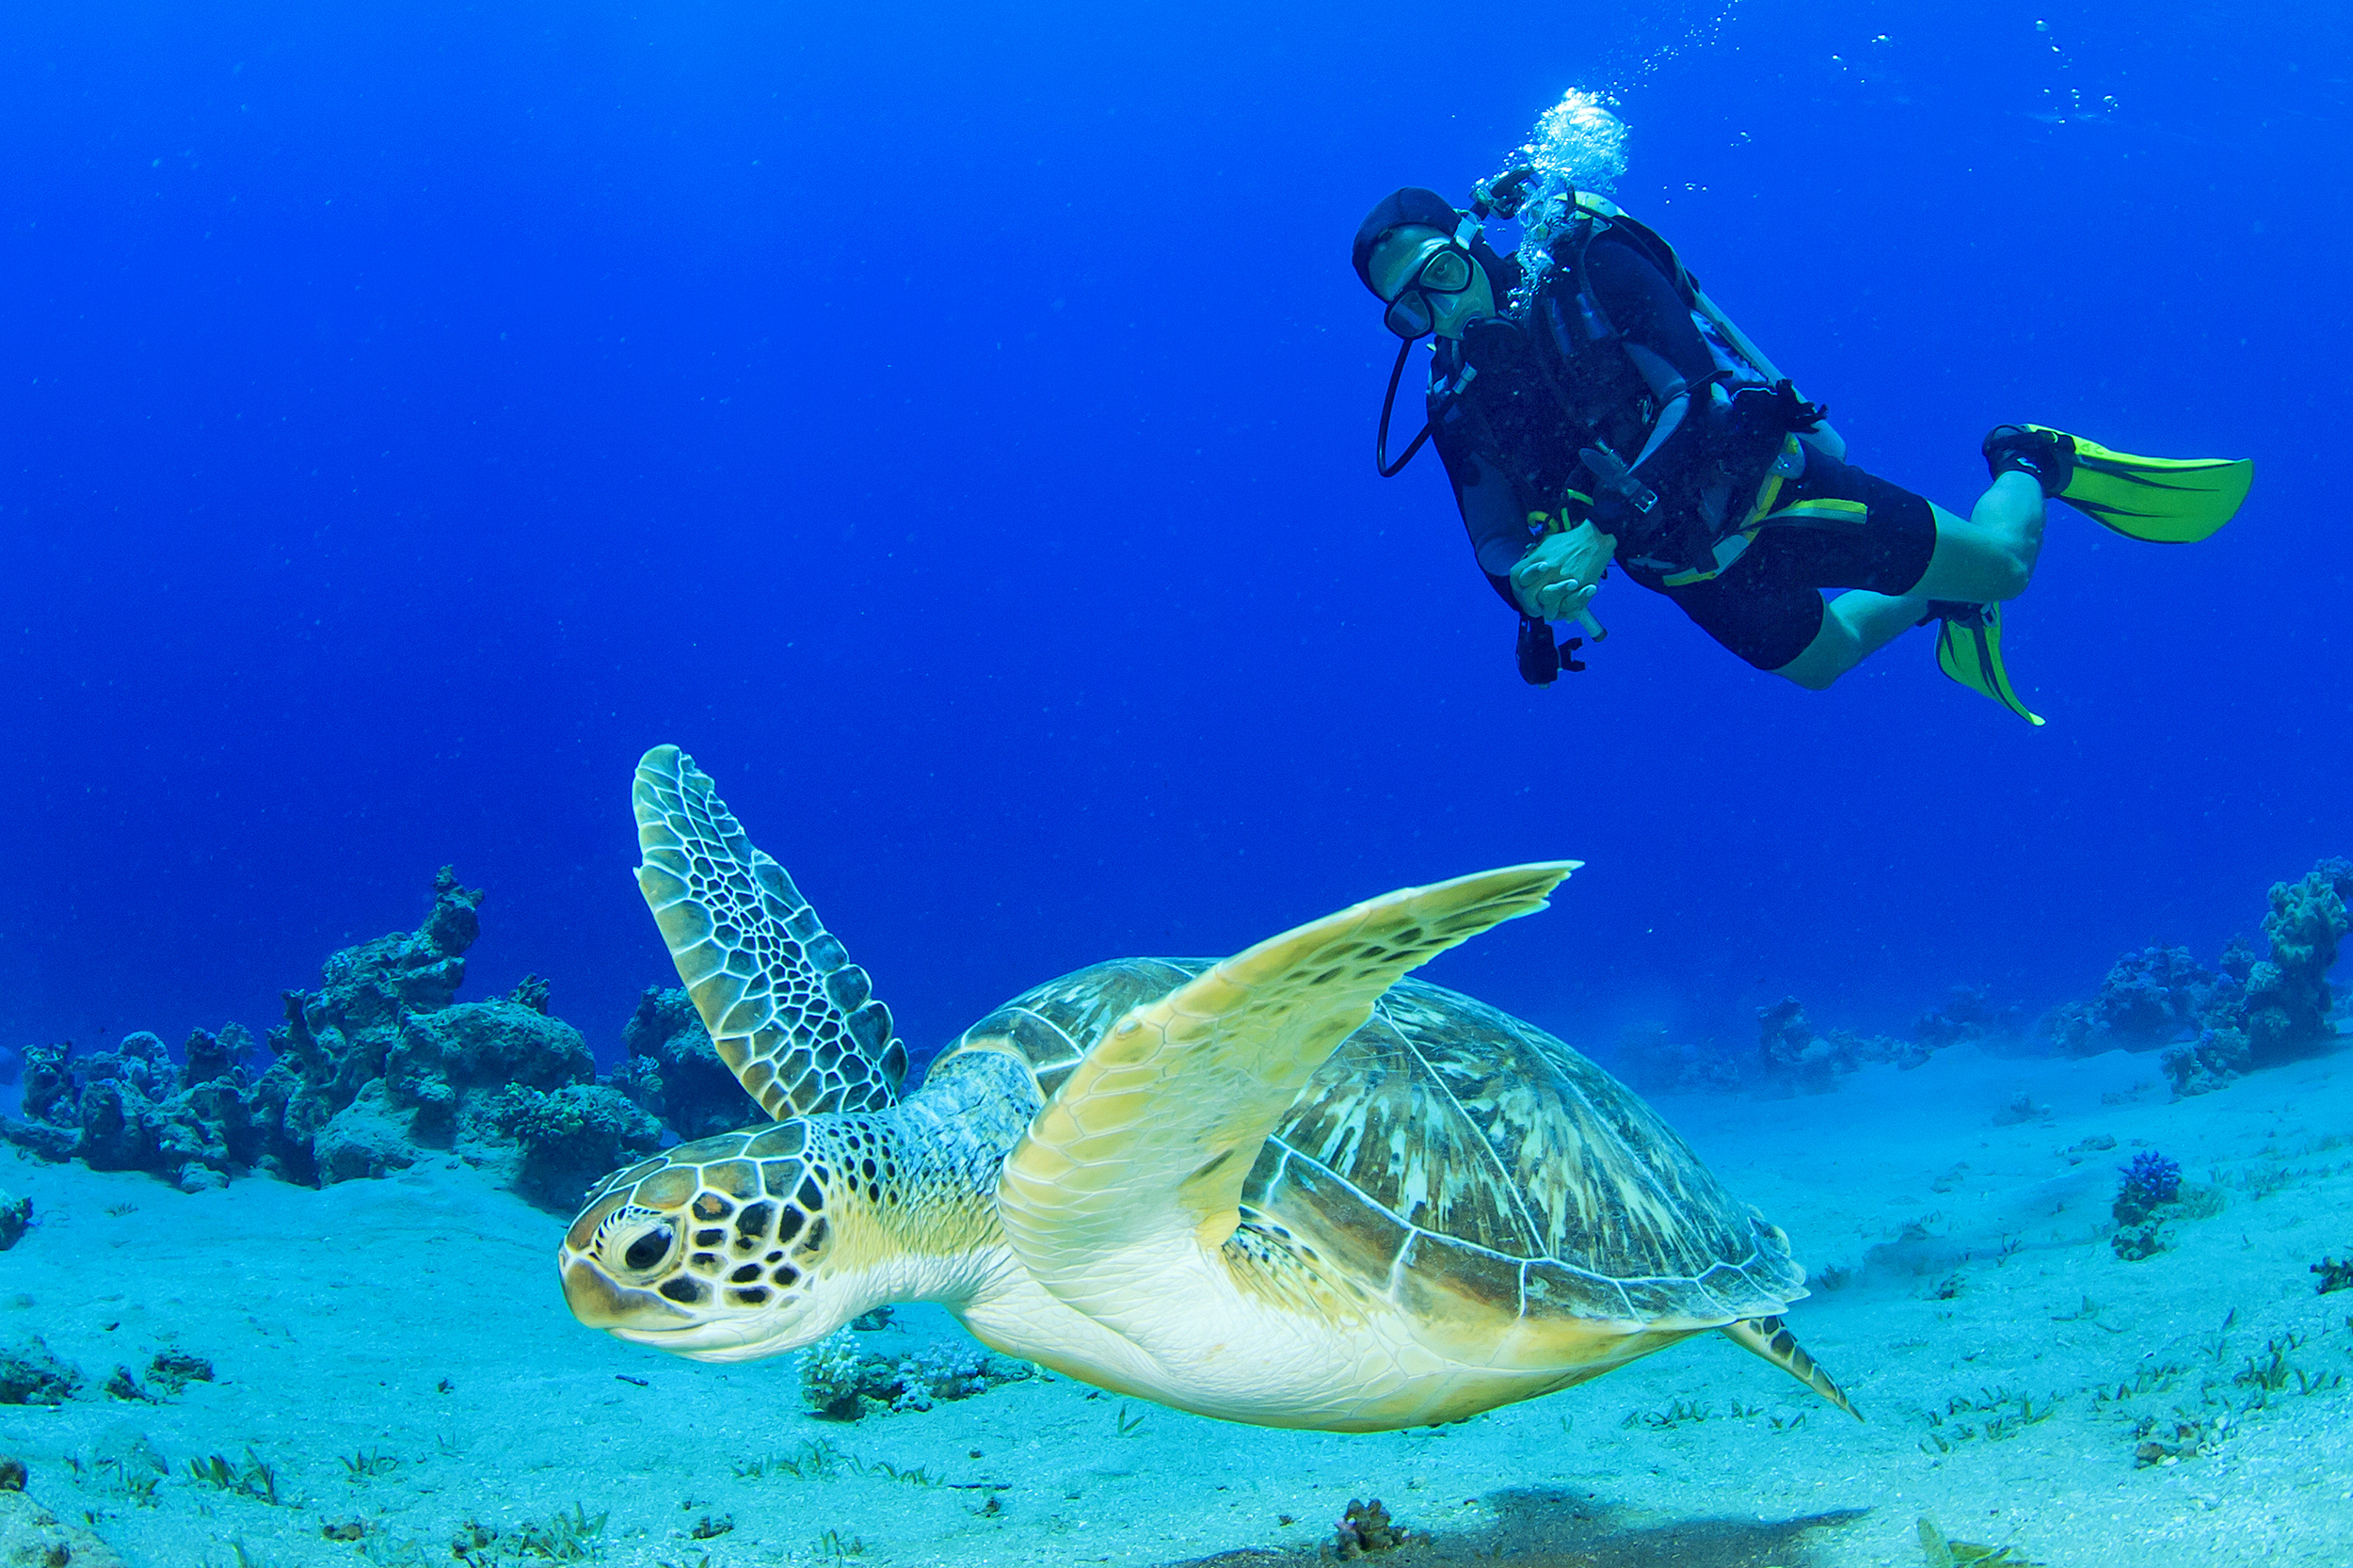 A diver swims next to a turtle